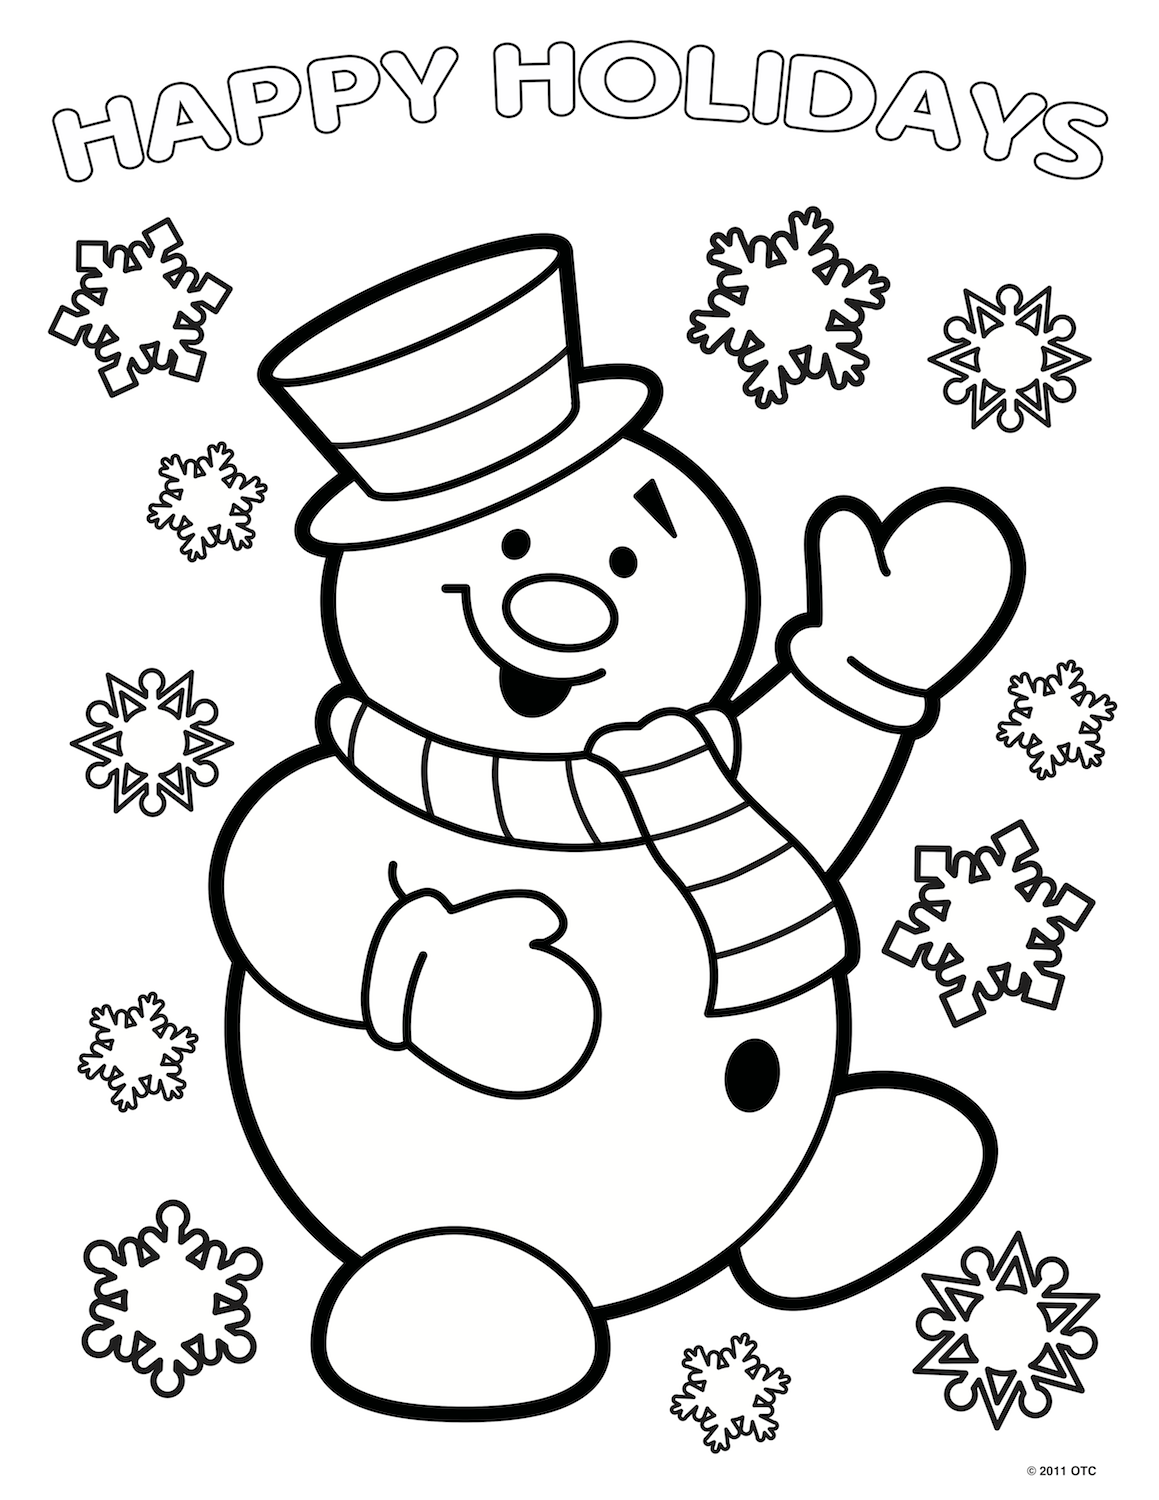 Christmas Coloring Pages Free Christmas Coloring Pages Christmas Coloring Sheets Snowman Coloring Pages